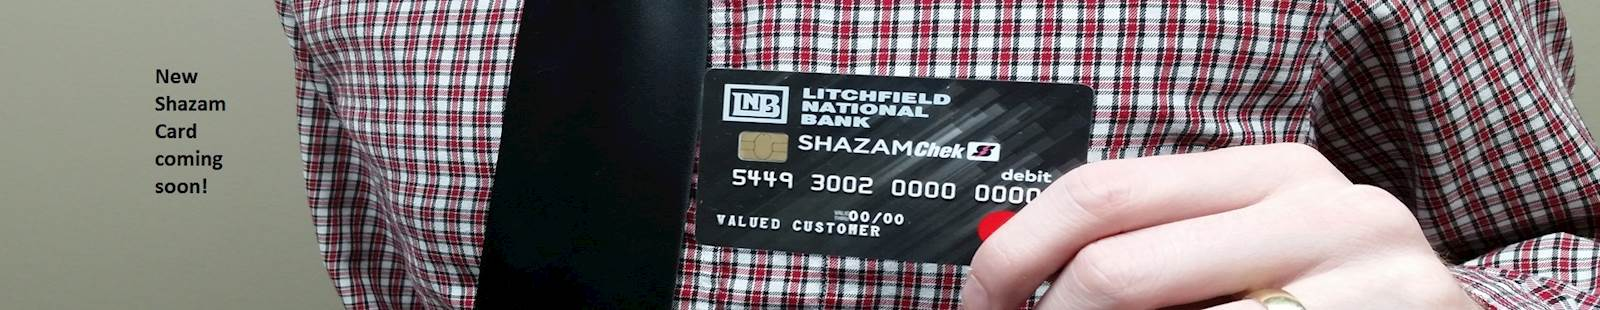 LNB Shazam Card coming soon